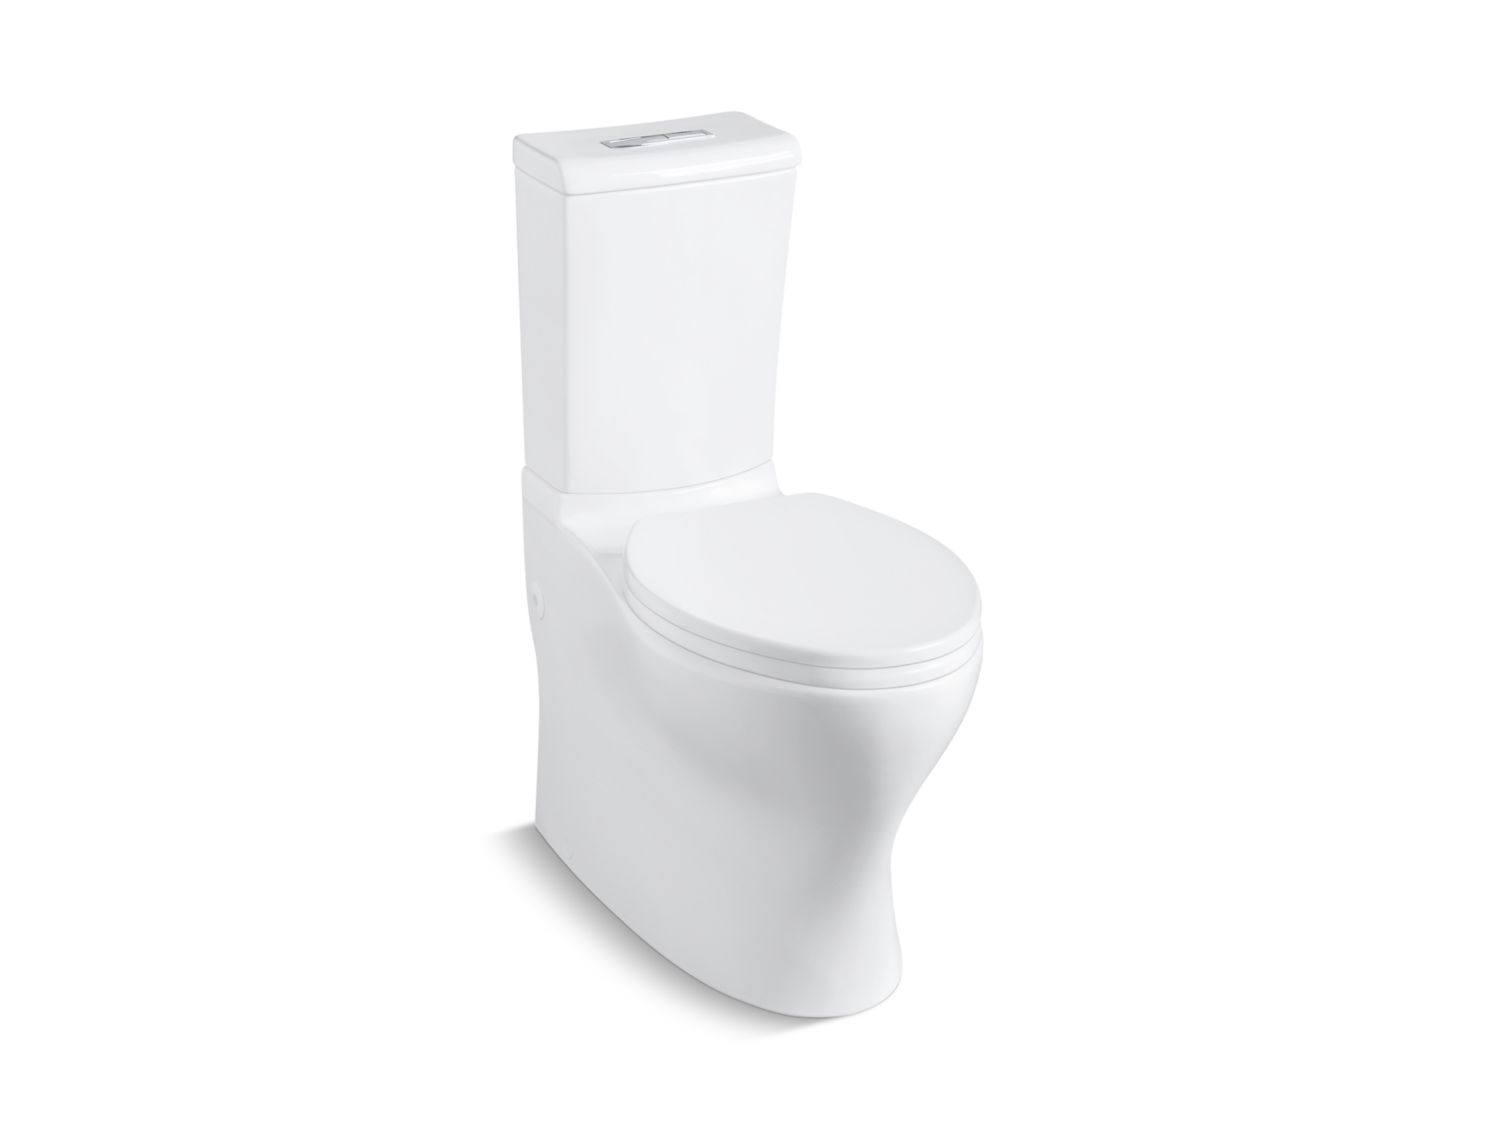 Plie Two-Piece High-Efficiency Toilet, Less Seat | P70310-00 ...